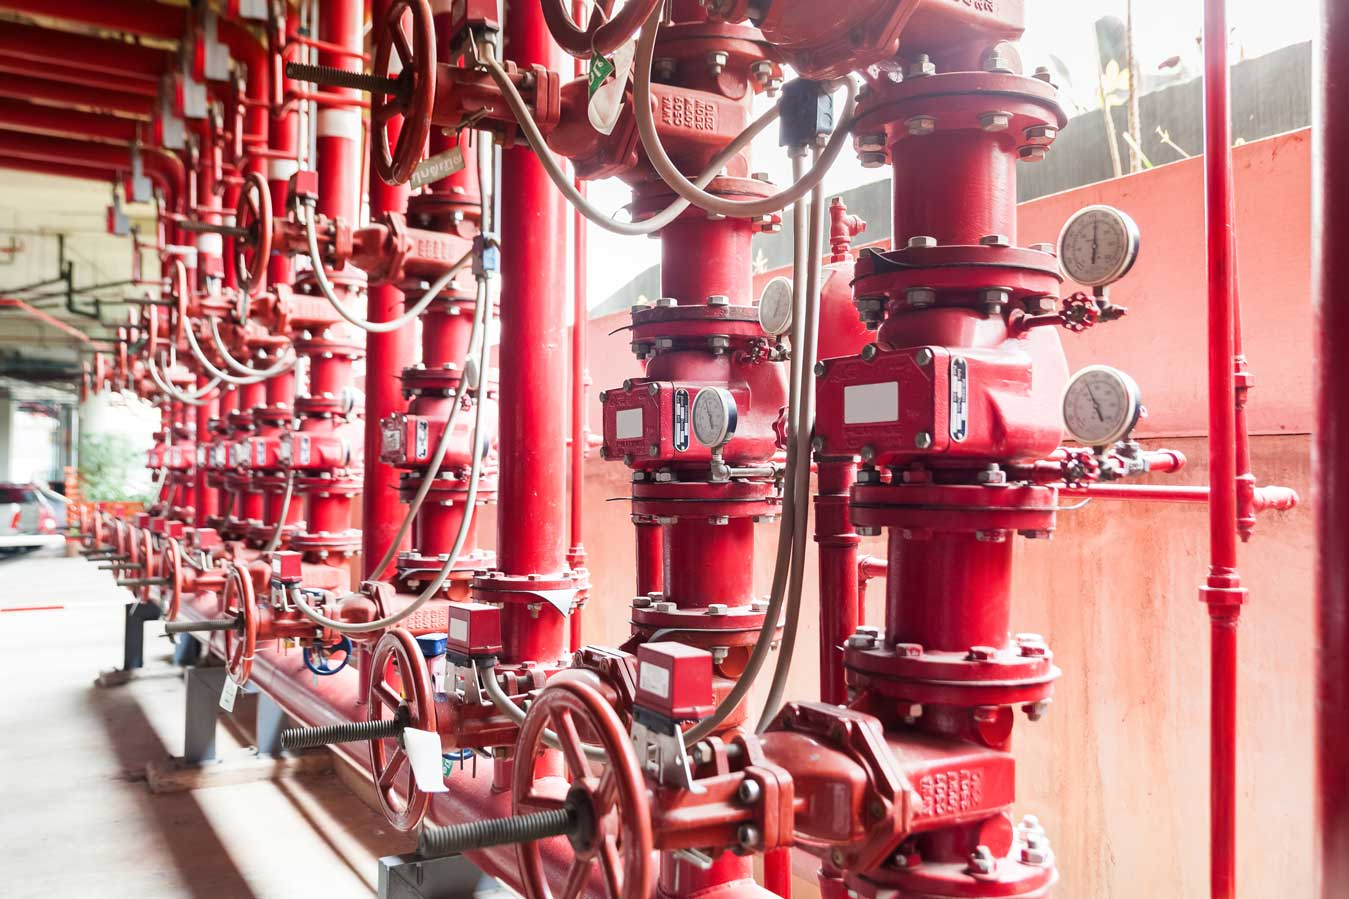 Why fire protection system is important in a building?